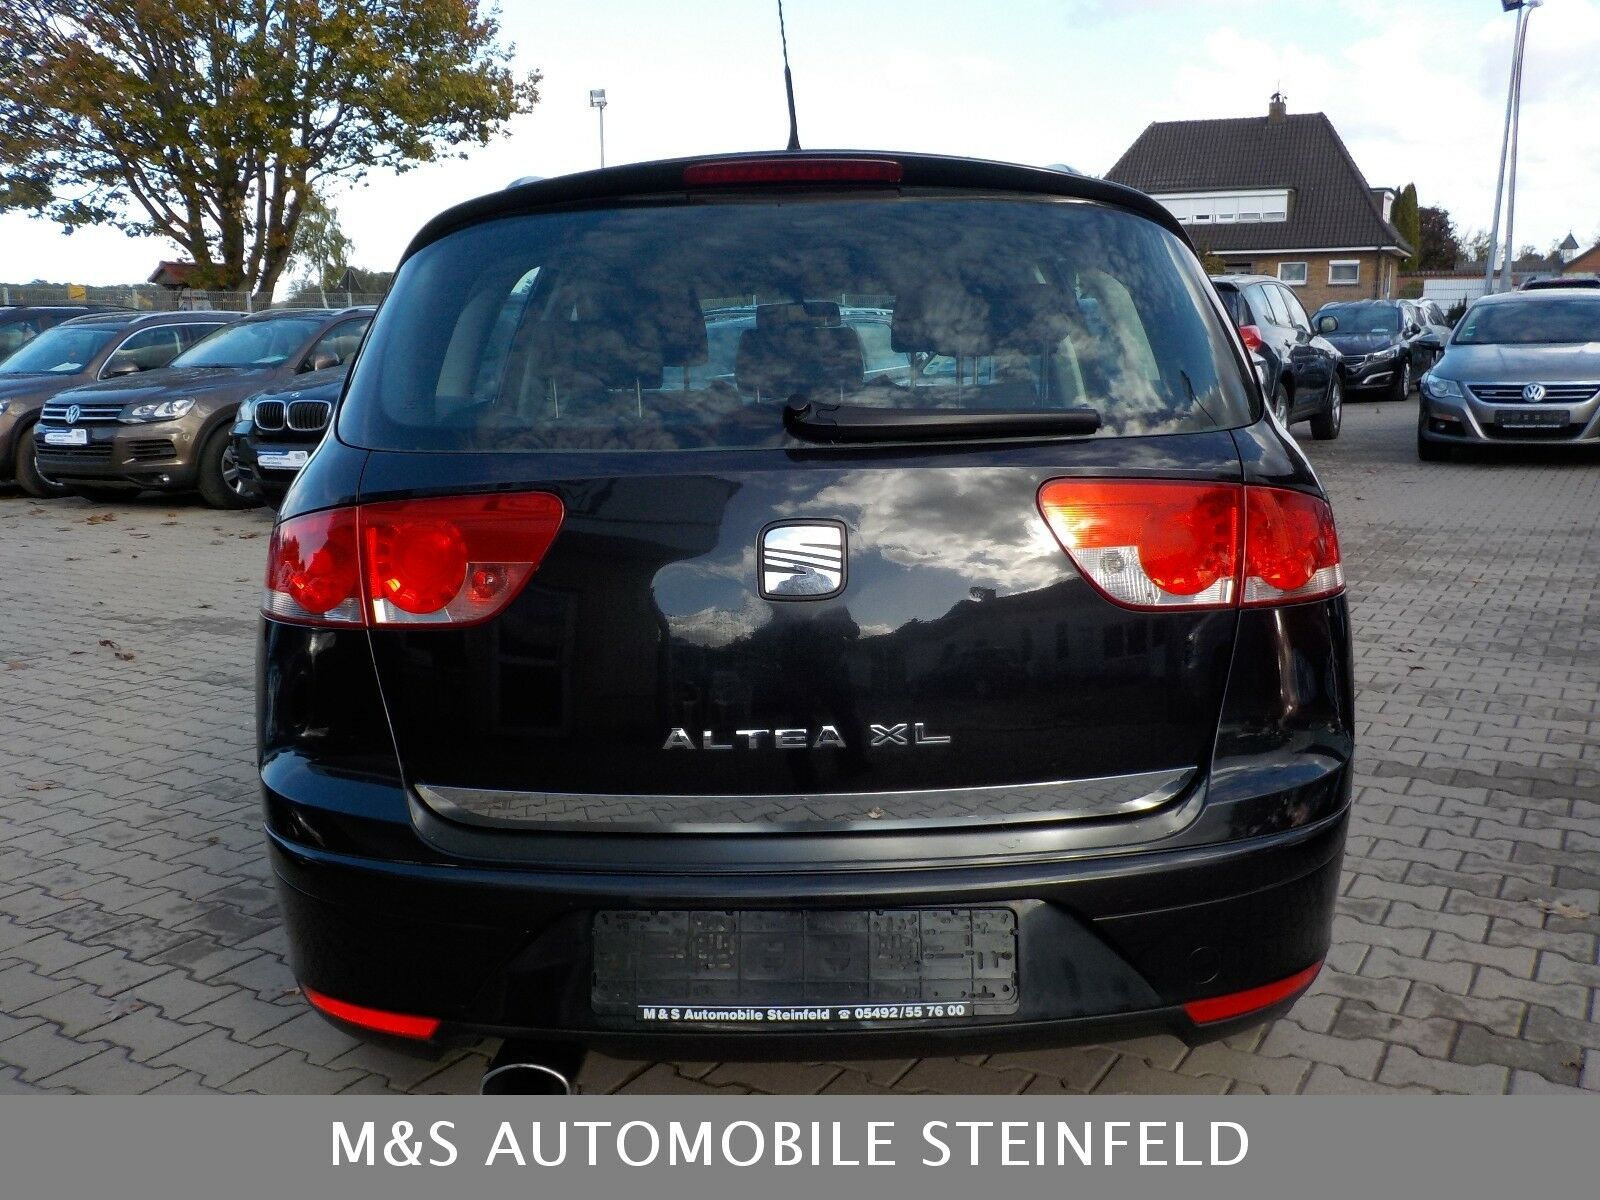 SEAT Altea XL 1.6 Reference *KLIMA*TEMPOMAT*6-GANG